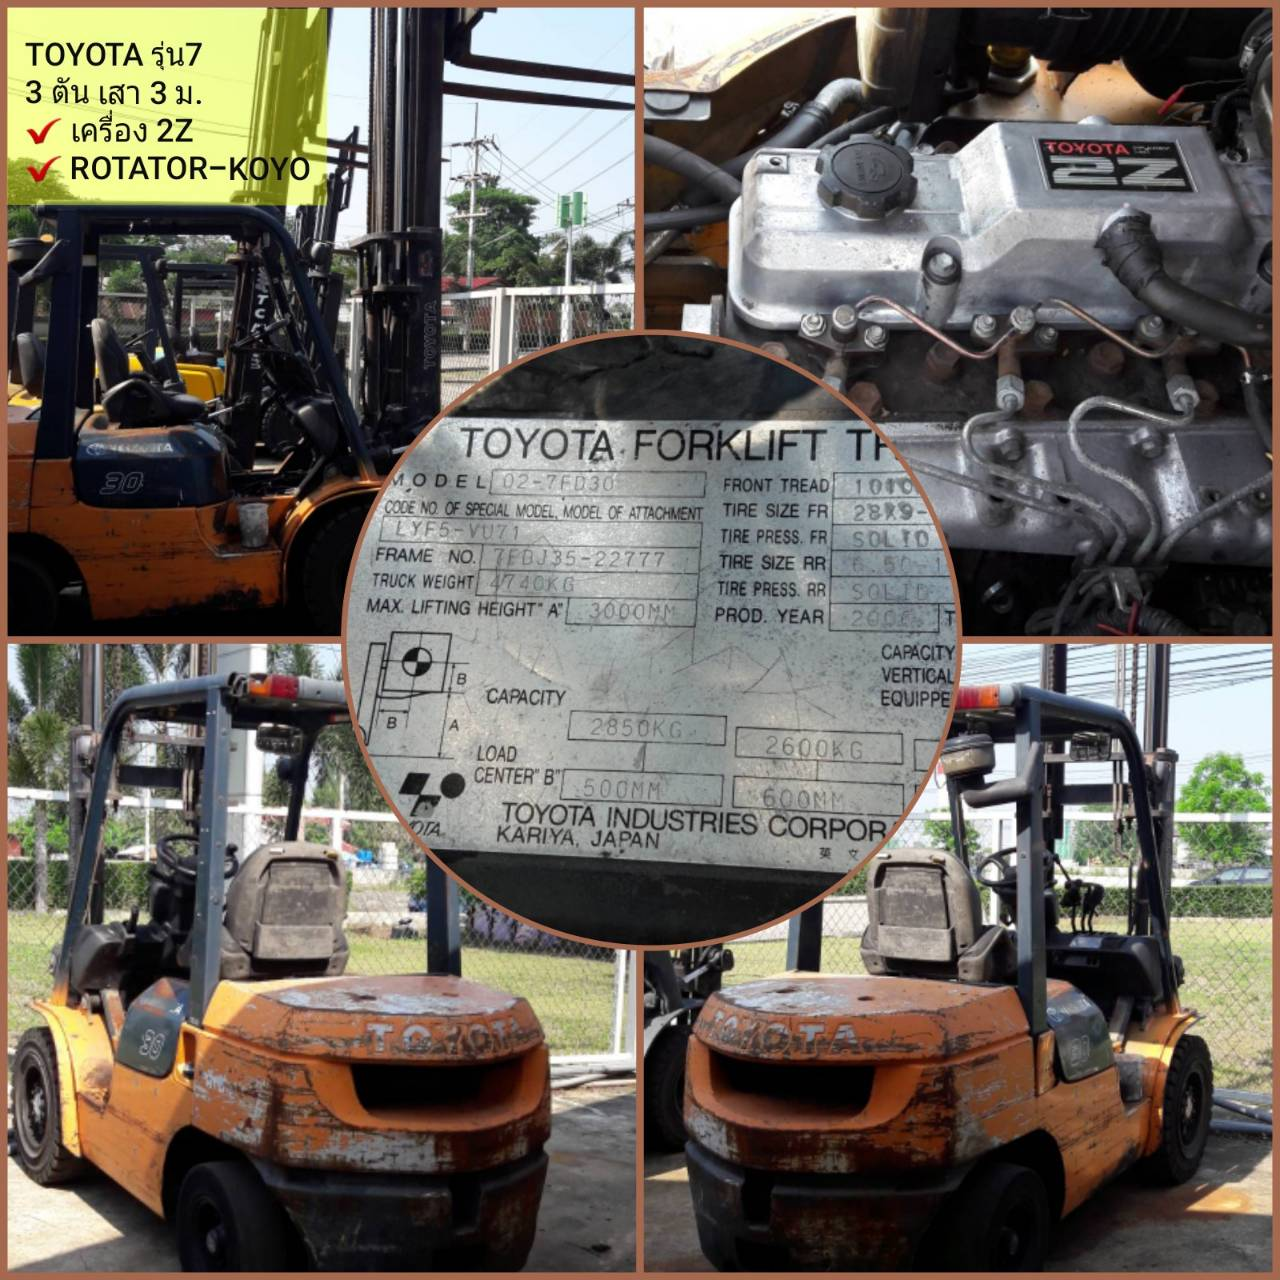 TOYOTA FORKLIFT COUNTER 02-7FD30-22777, BATTERY, 3 TON